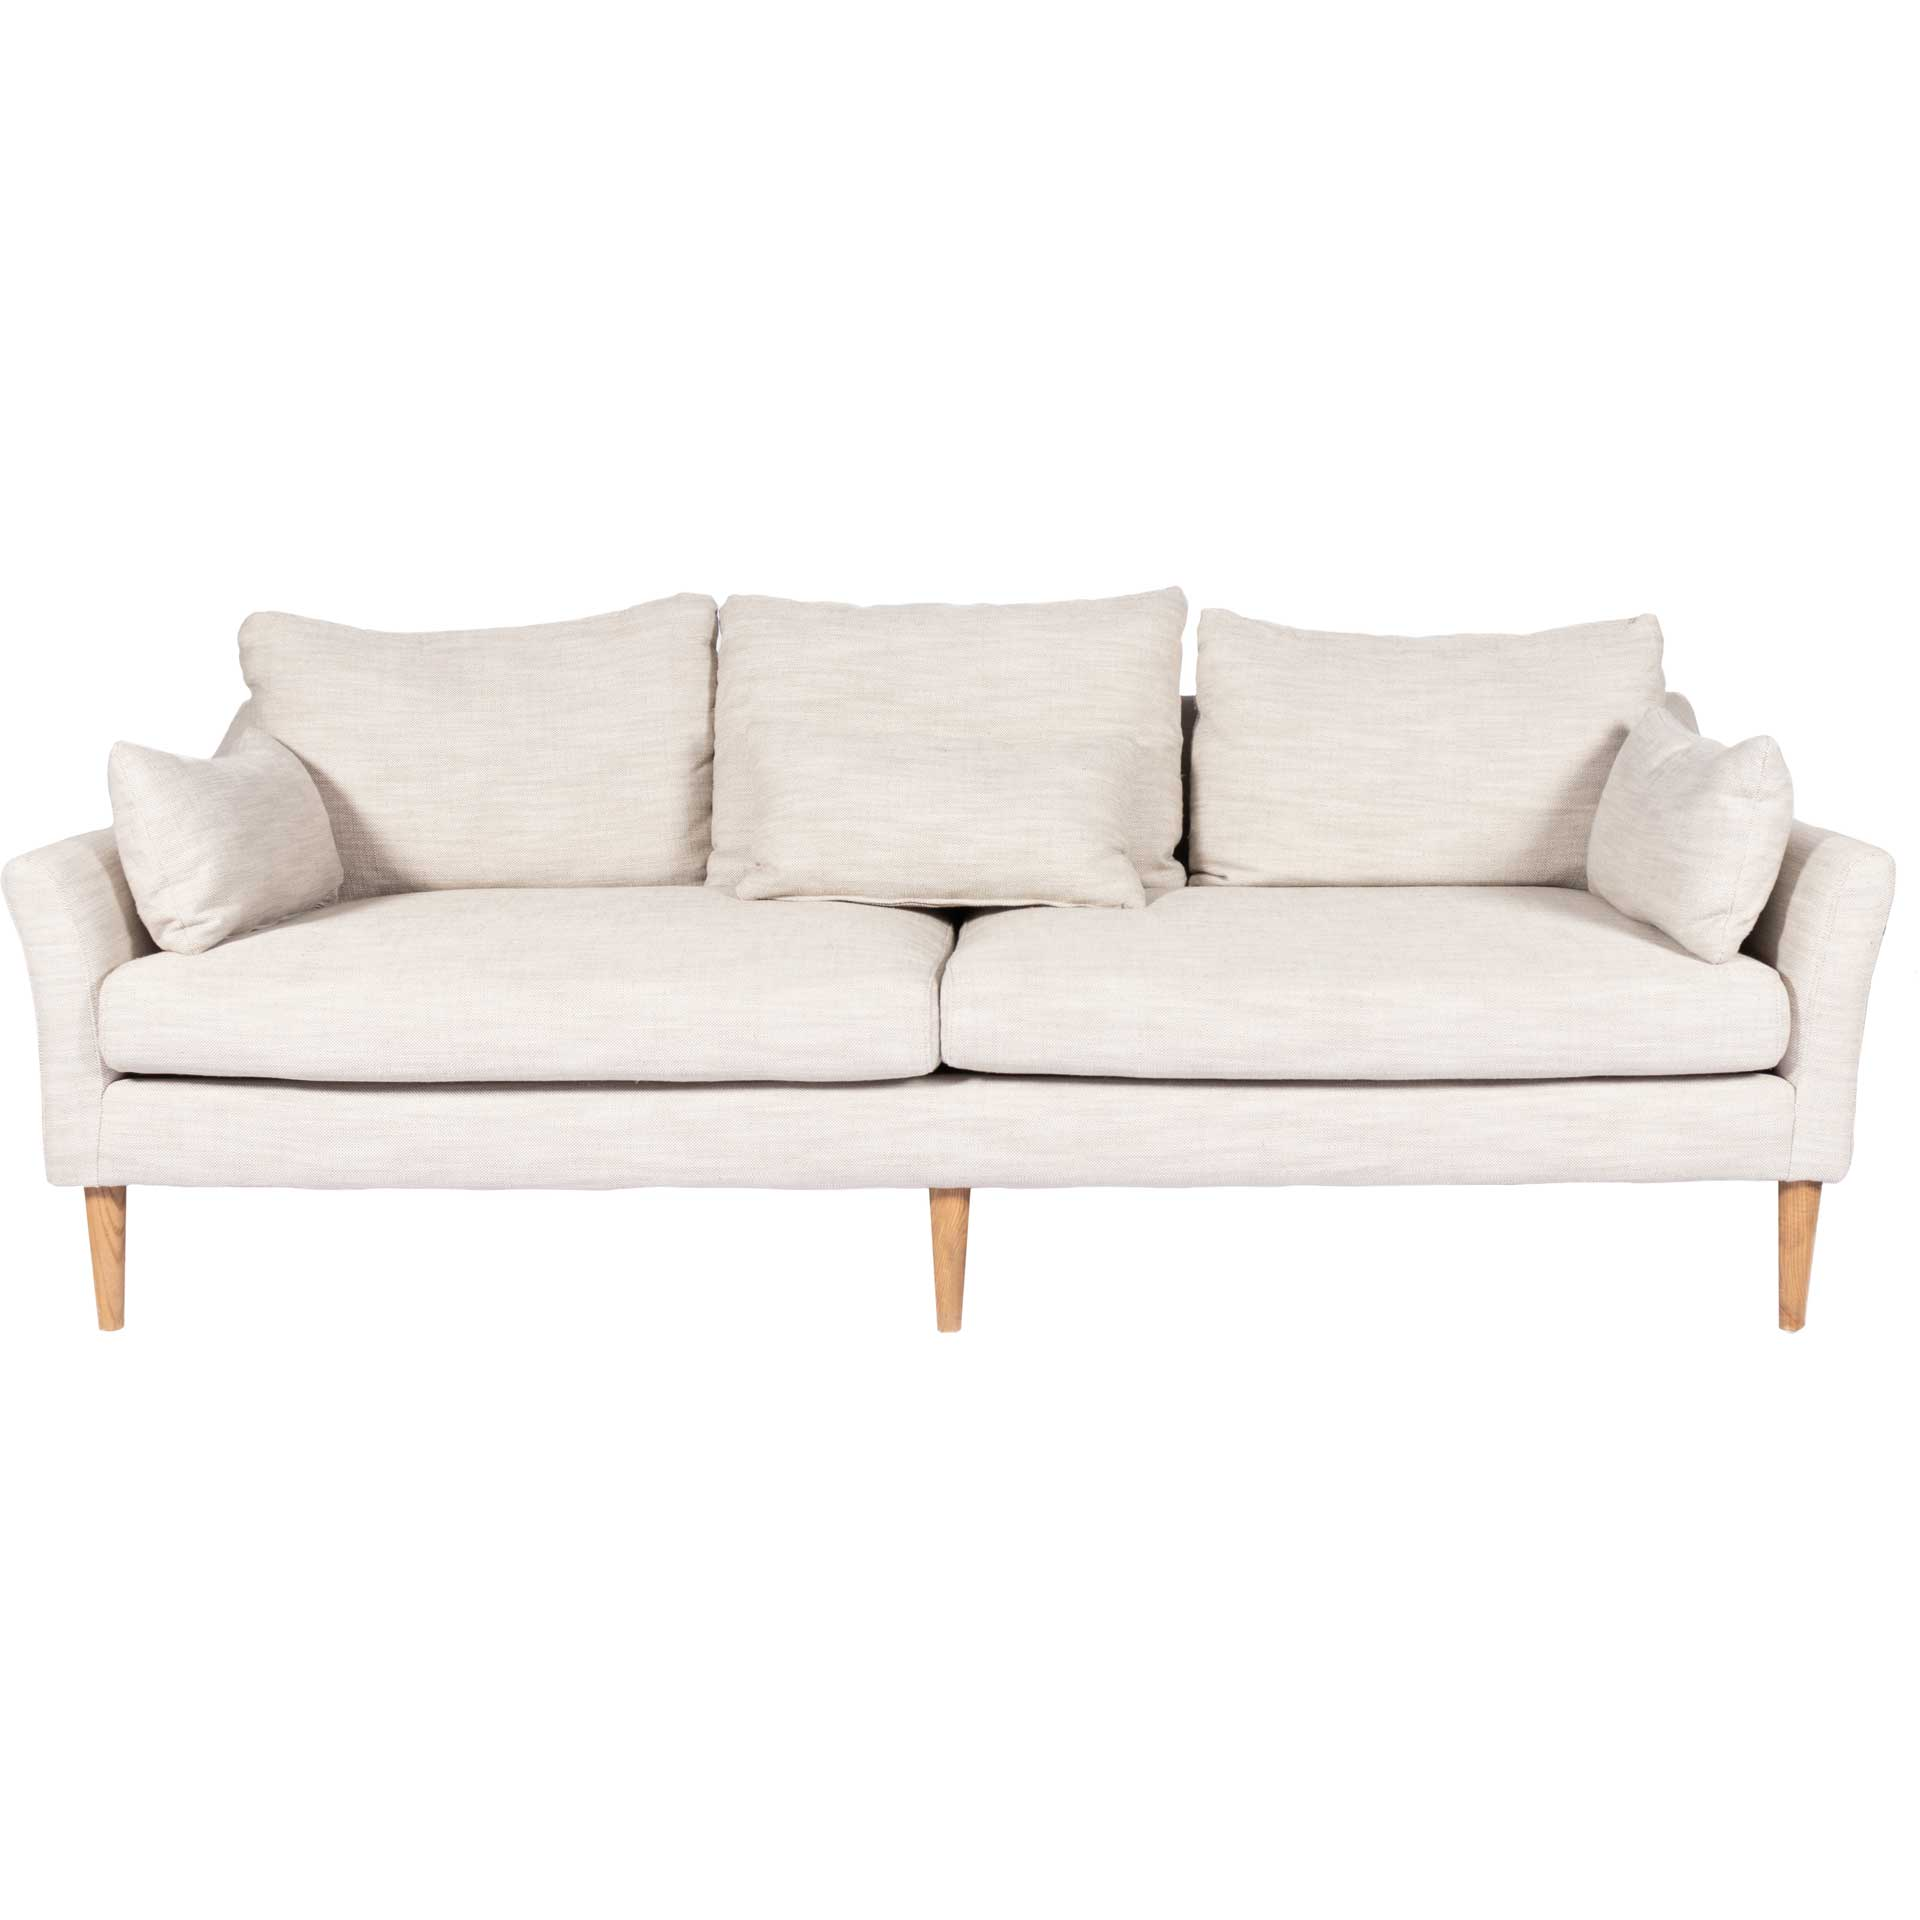 Calina Sofa